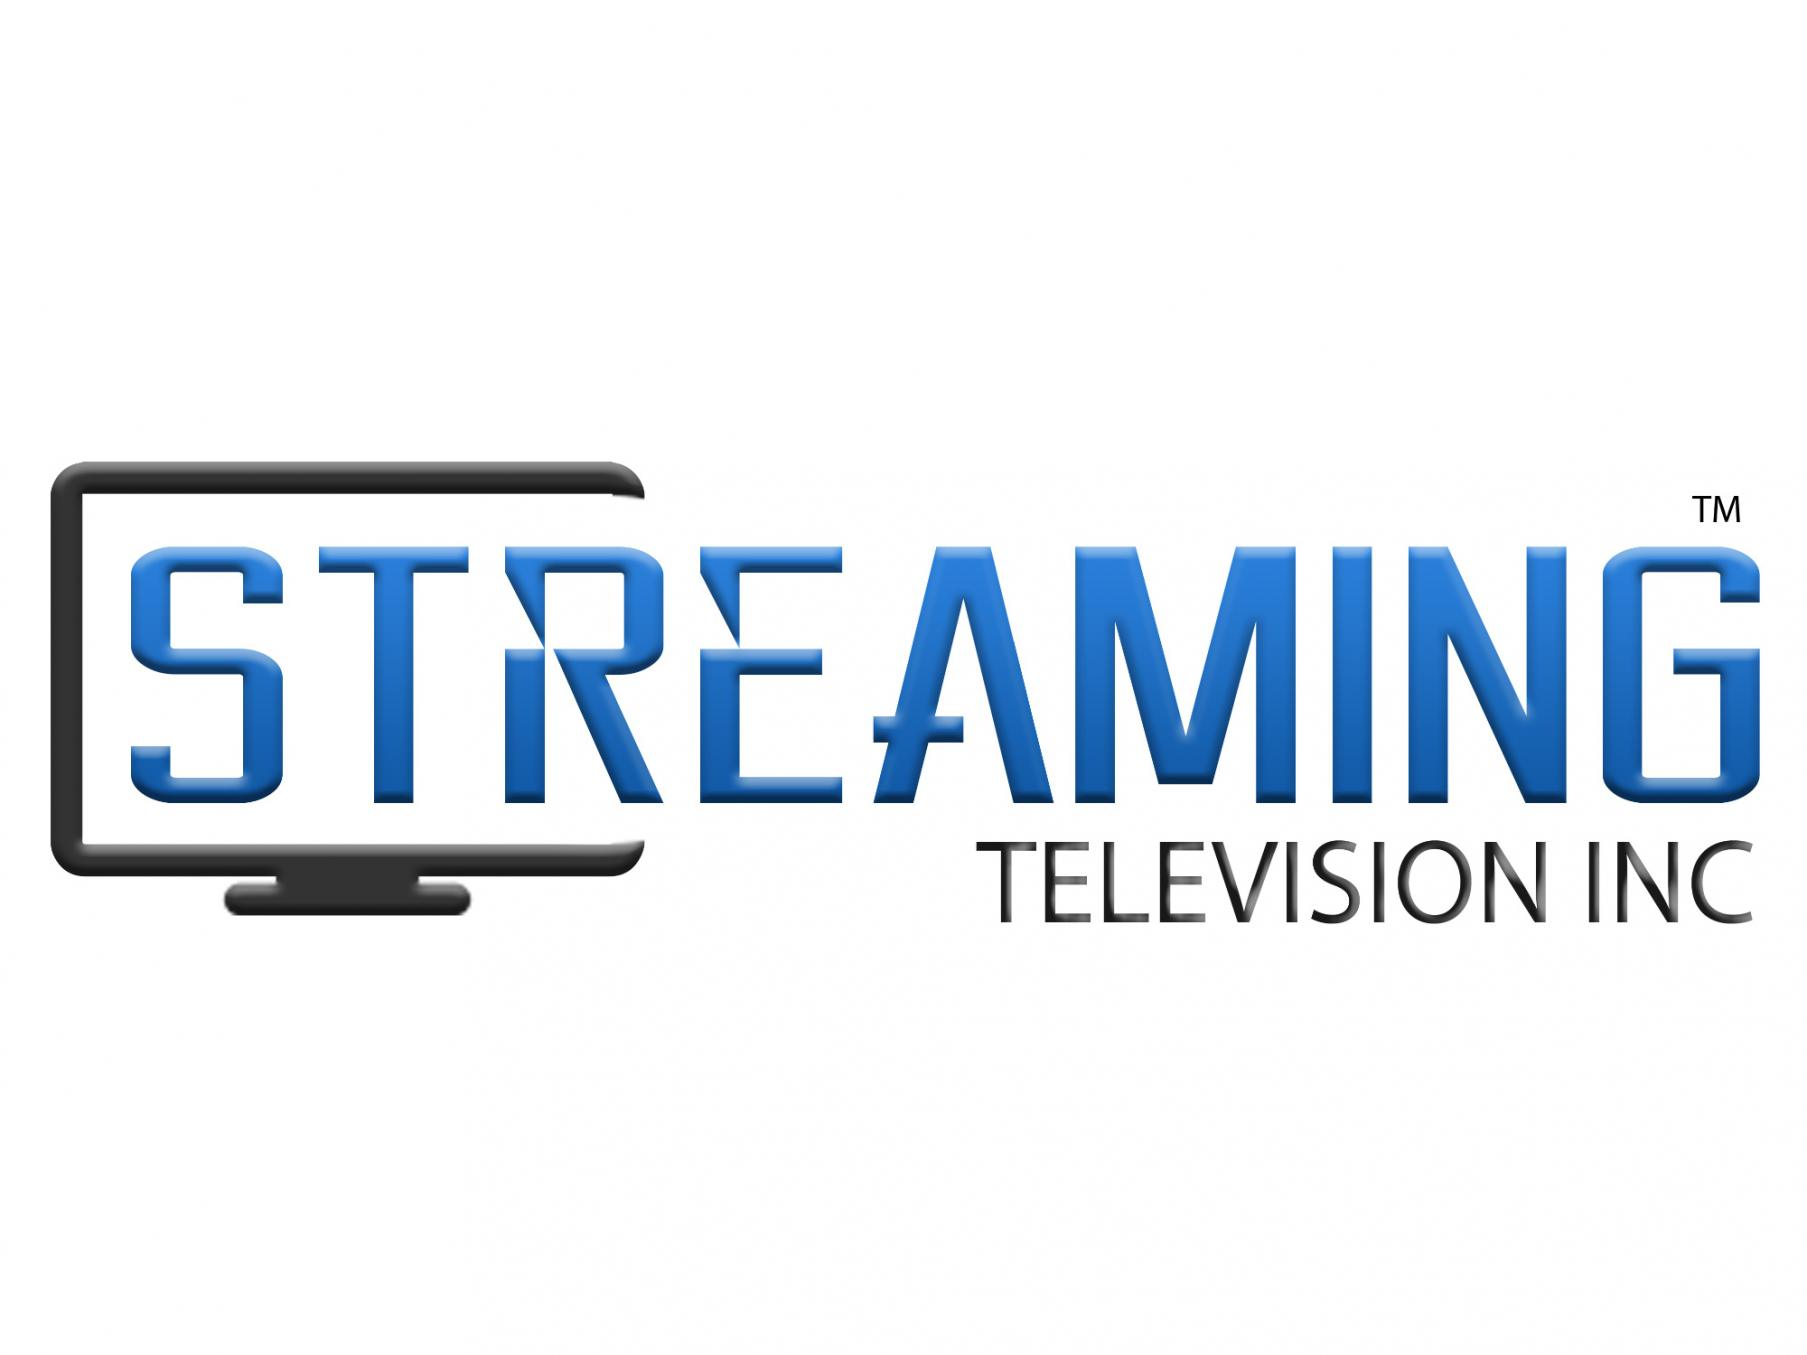 Streaming Television Inc Logo